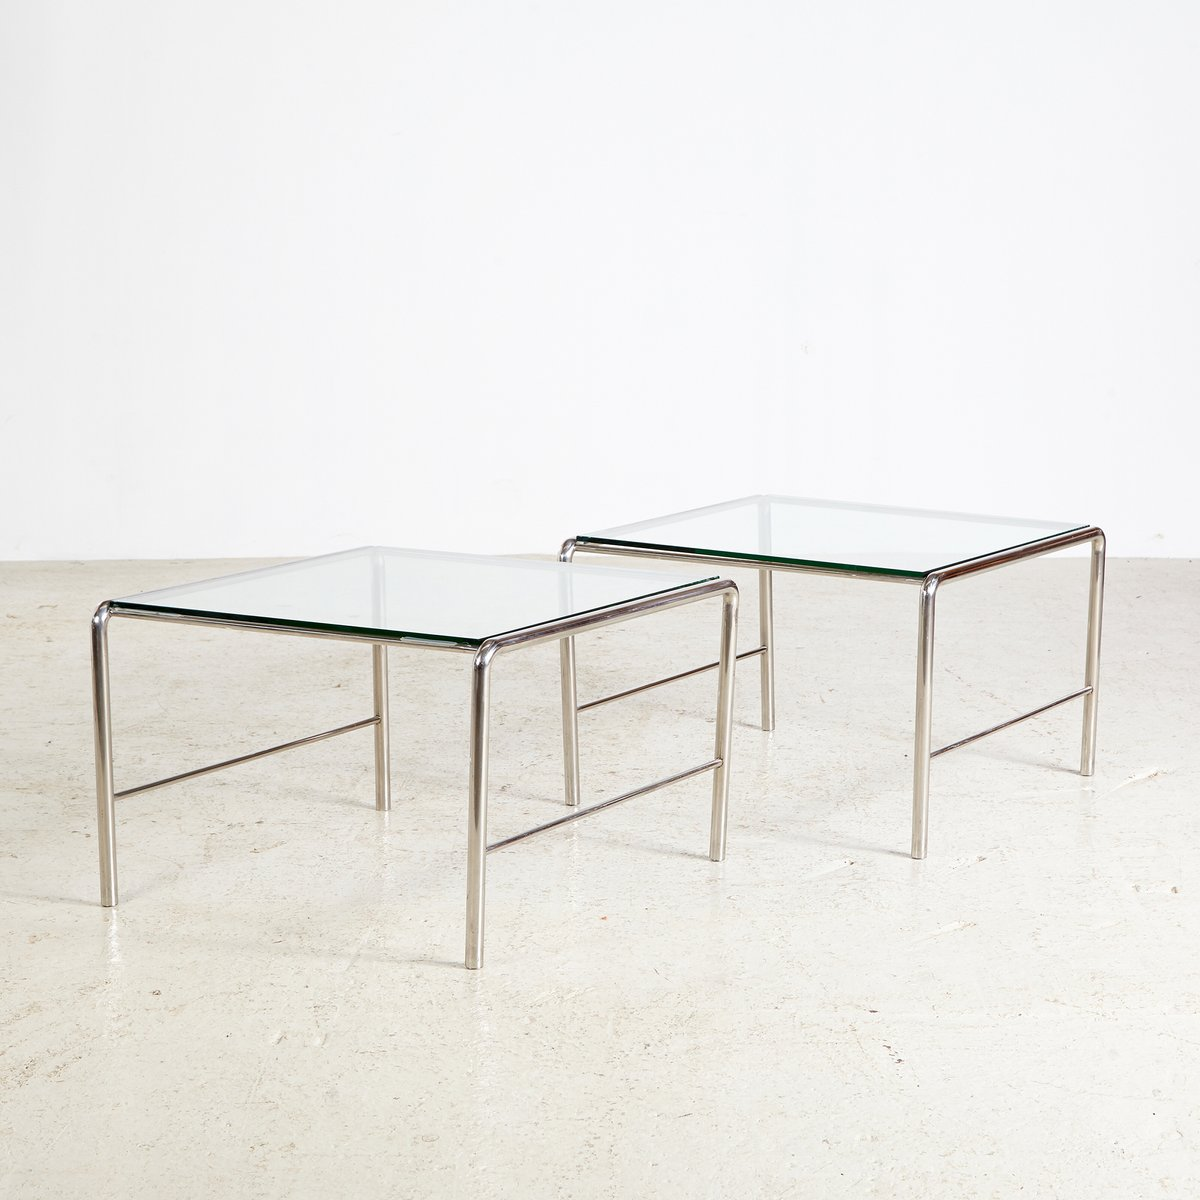 Vintage Coffee Table With Chrome Frame & Glass Top, 1960s